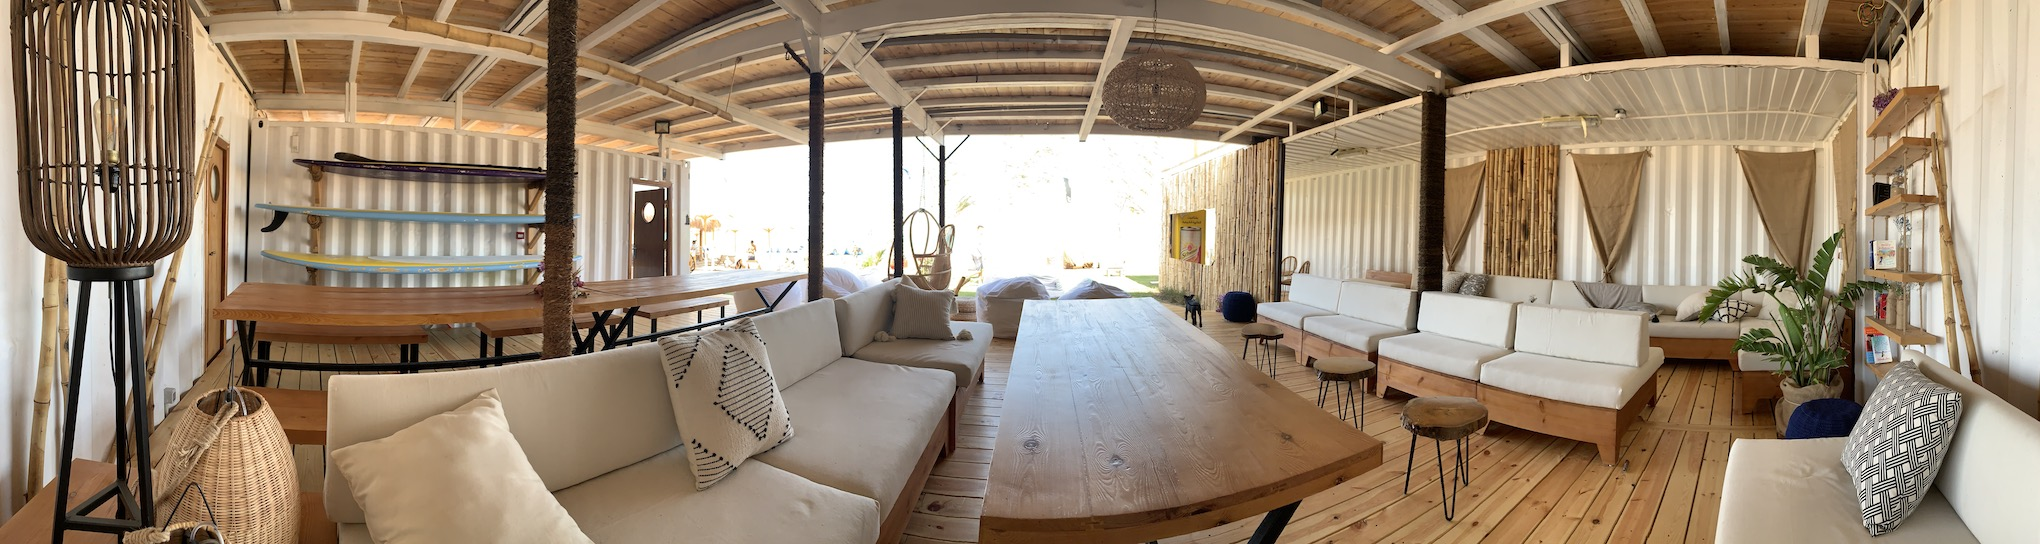 lounge Makani Beach Club chill out kitesurfing center working space